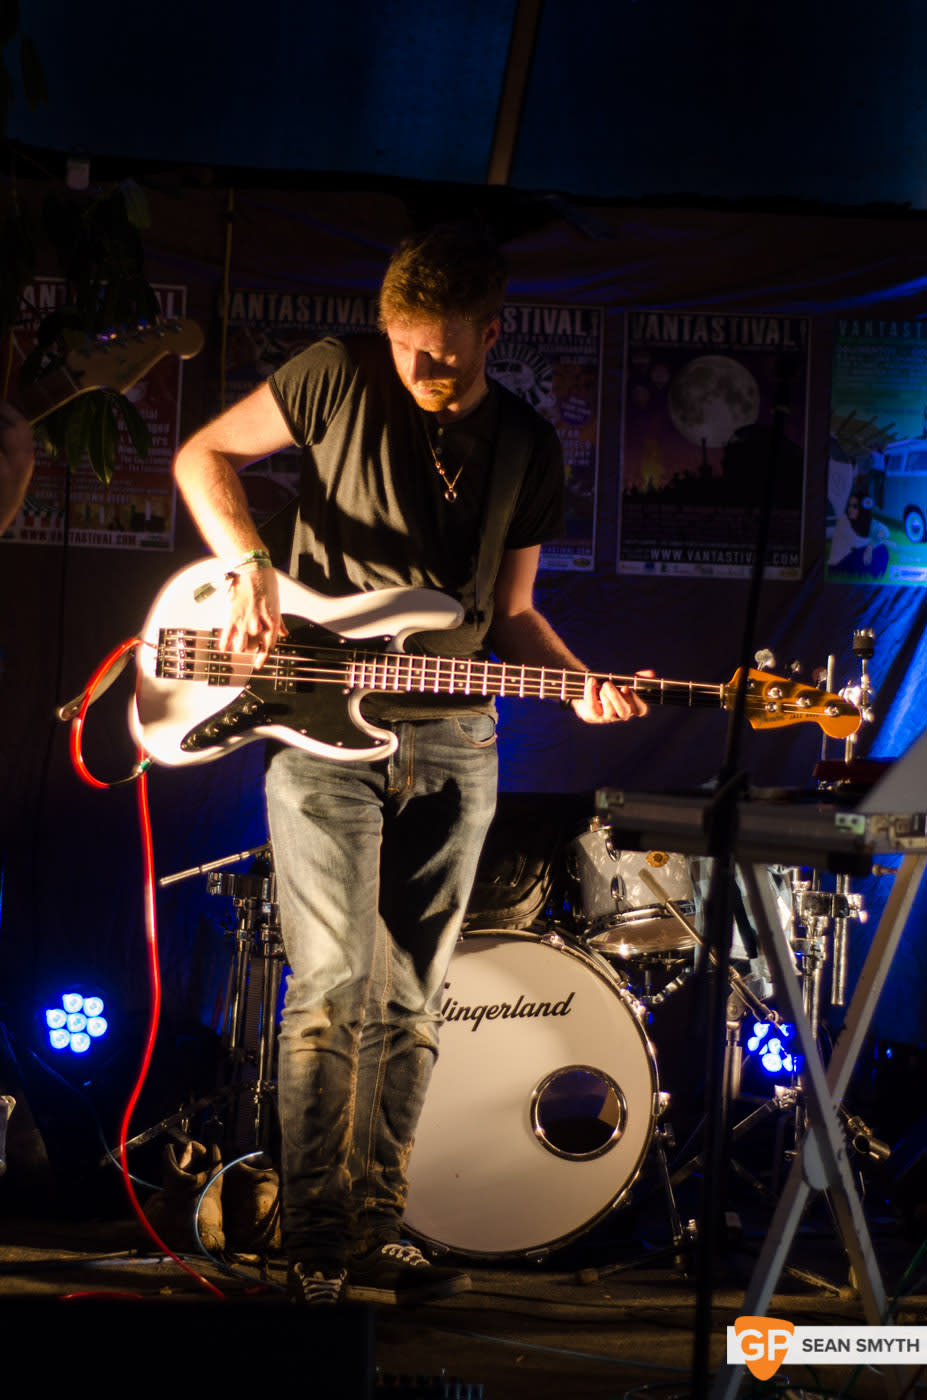 almost-ghosts-sunday-at-vantastival-by-sean-smyth-1-5-14-1-of-49